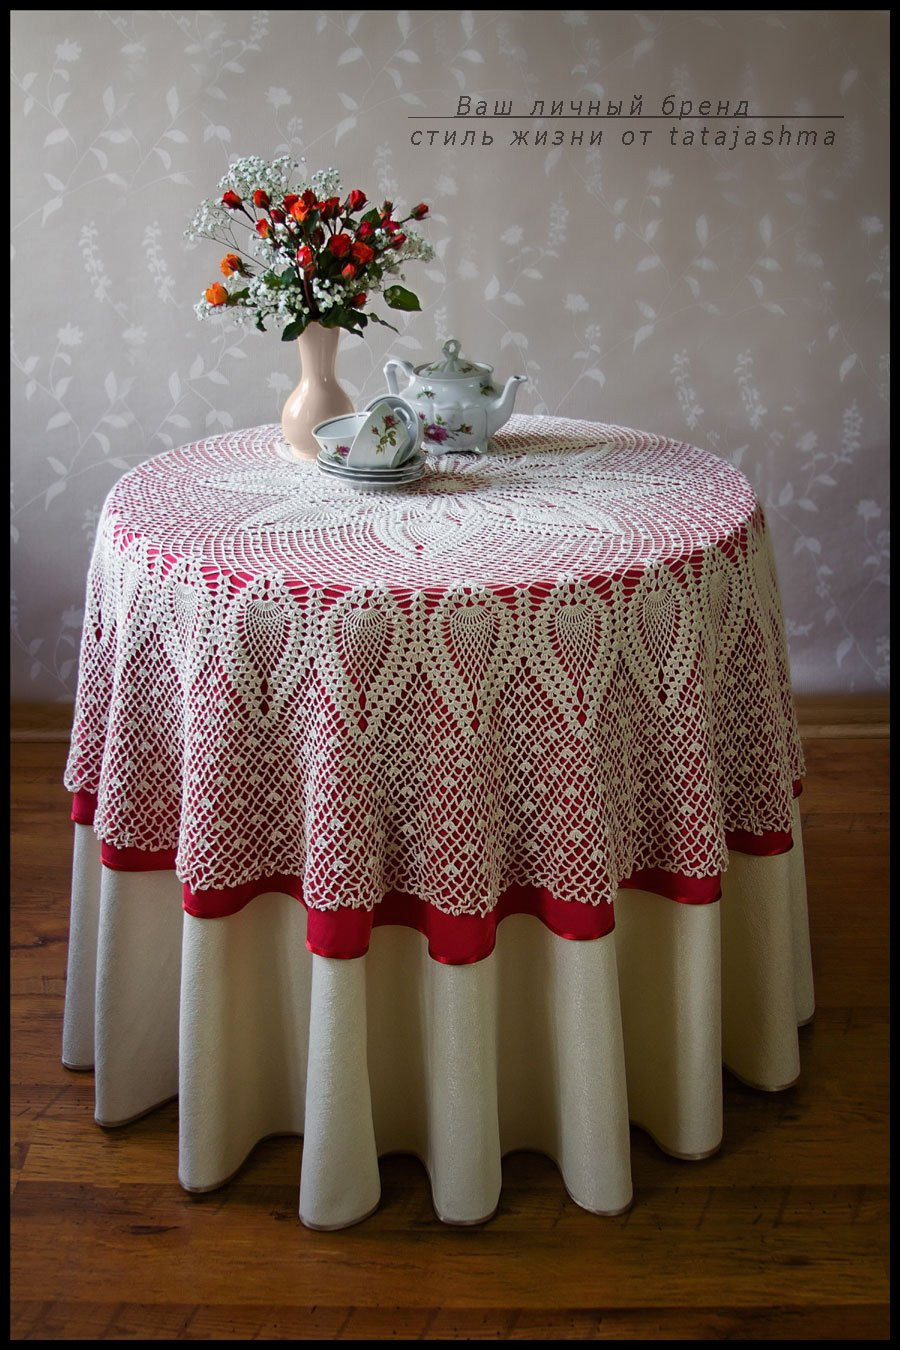 Crochet Round Tablecloths Awesome Sale Crochet Tablecloth Petra Round Tablecloth Crochet Of Unique 43 Pictures Crochet Round Tablecloths